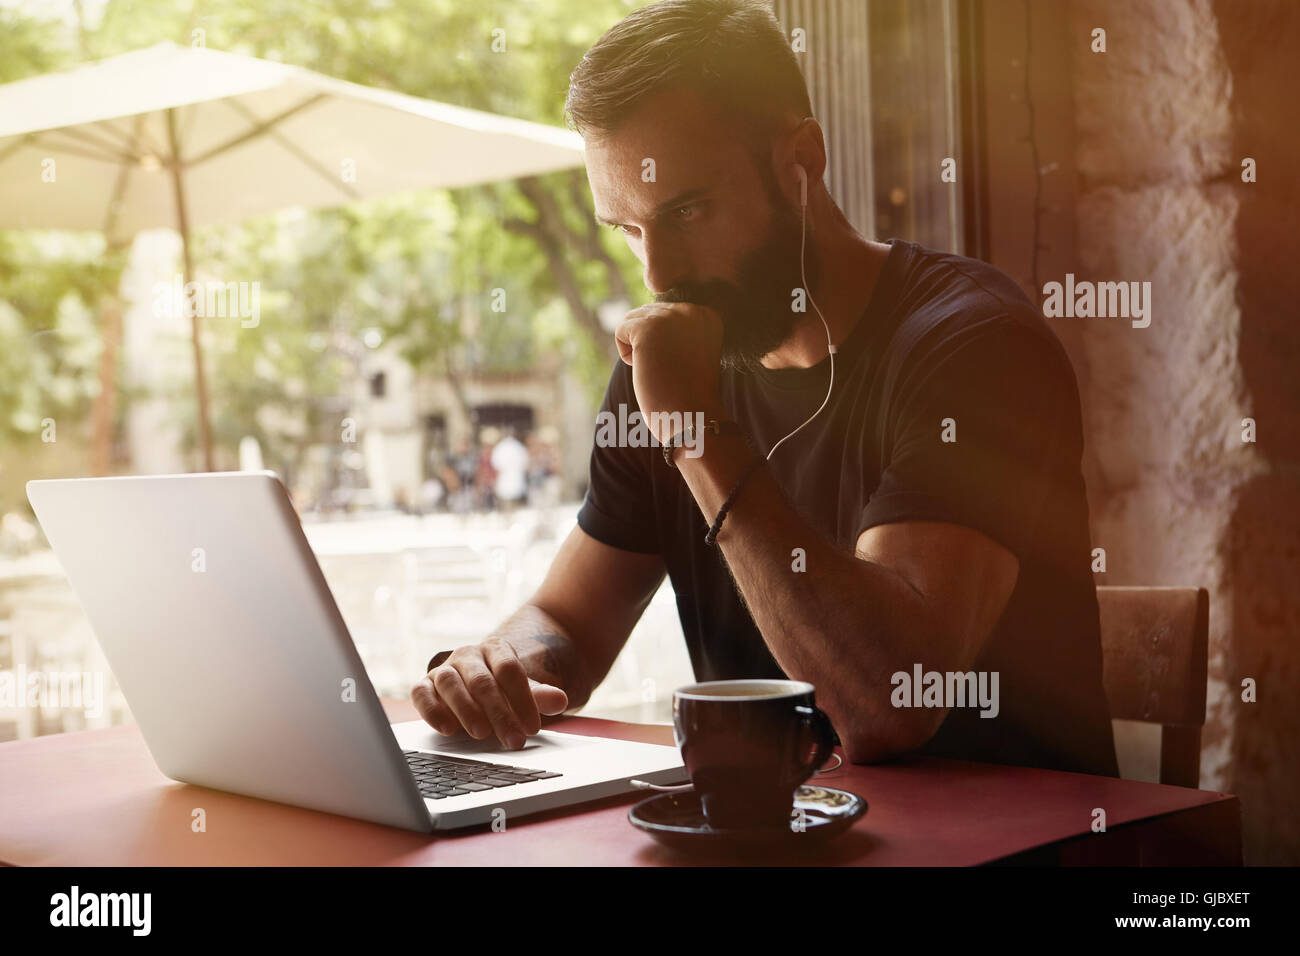 Concentrated Young Bearded Businessman Wearing Black Tshirt Working Laptop Urban Cafe.Man Sitting Table Cup Coffee - Stock Image